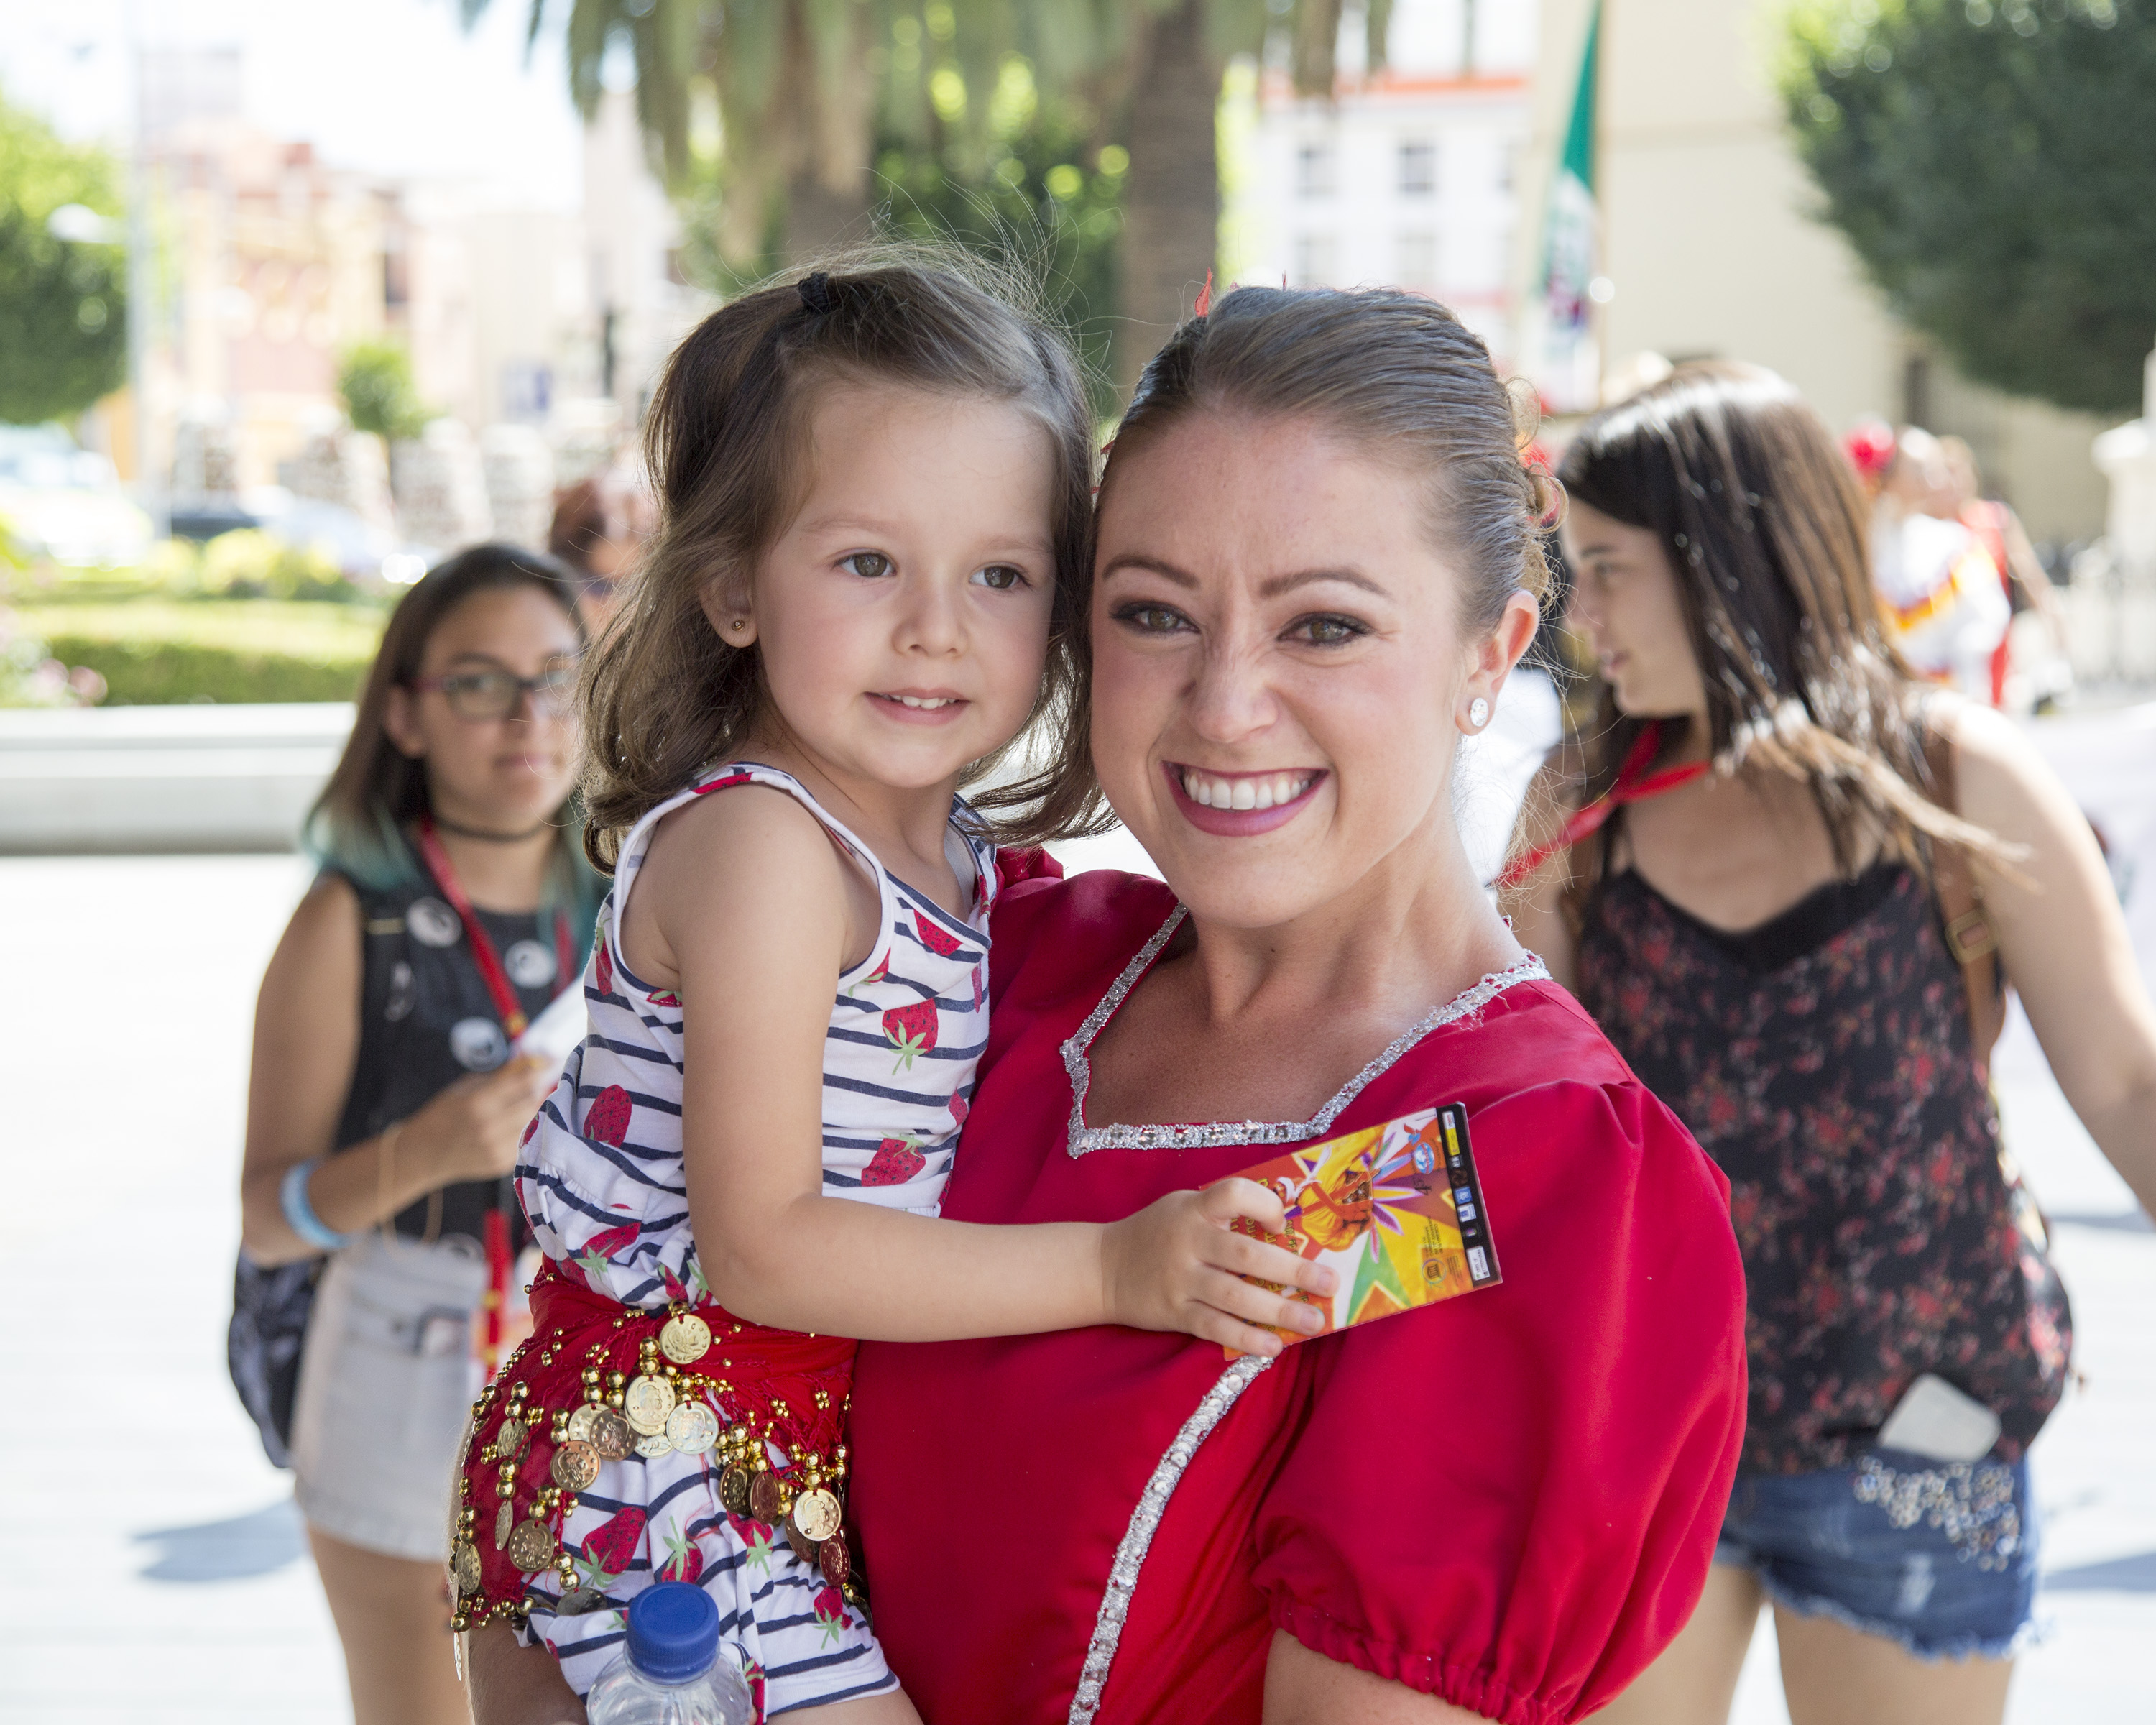 Kylie Faulk in her US clog costume spending time with local children while at the Extremadura Festival in Badajoz, Spain, in 2015.